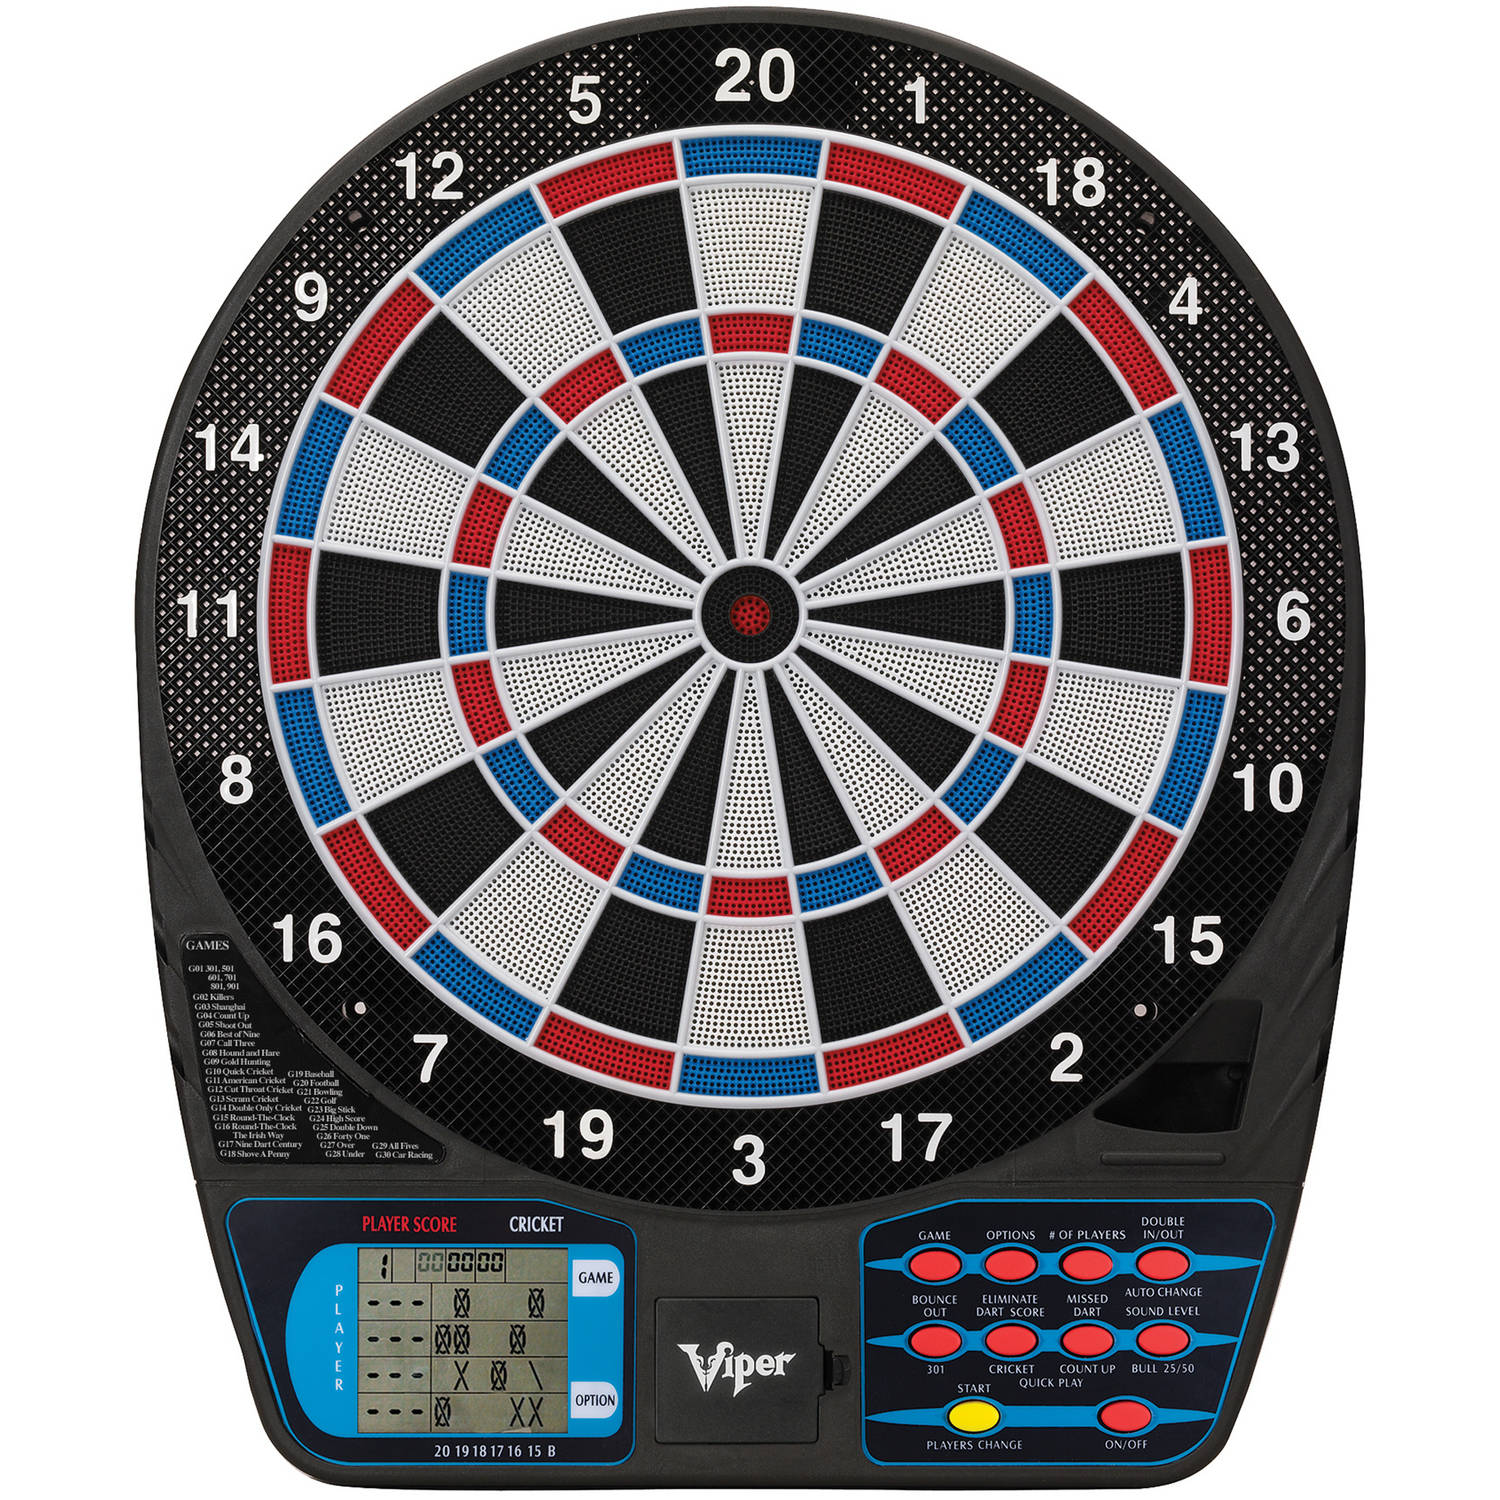 Viper 787 Electronic Dartboard by Generic